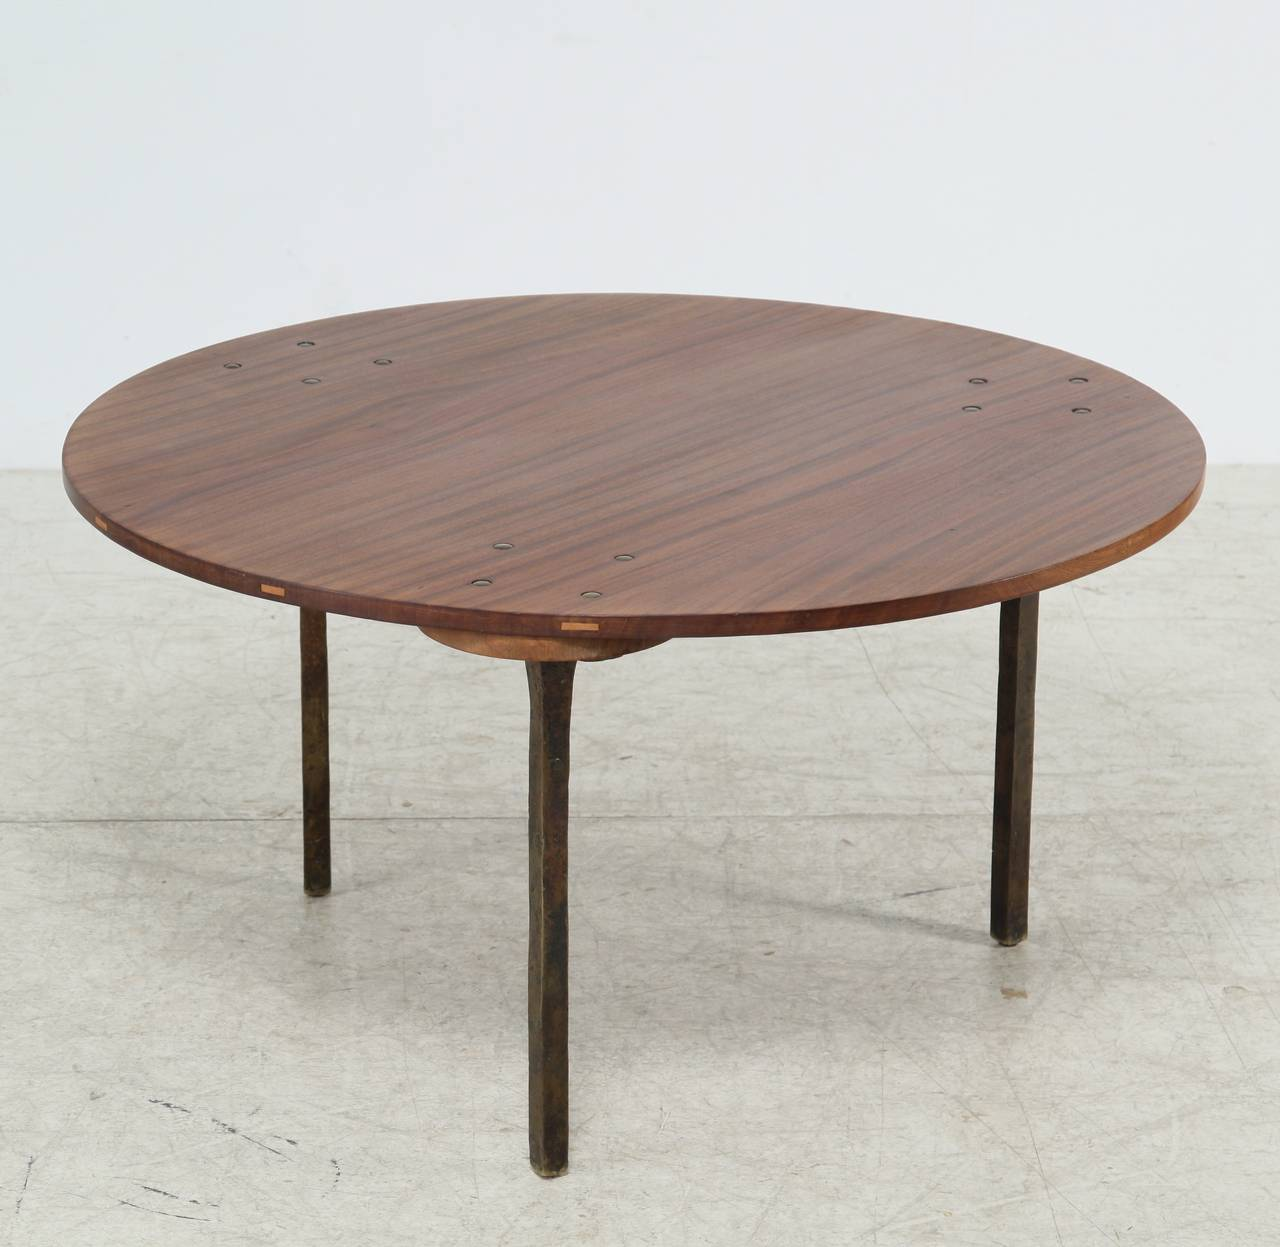 Coffee Table With Bronze Legs: Sculptural Coffee Table By Paul Dierkes With Bronze Legs